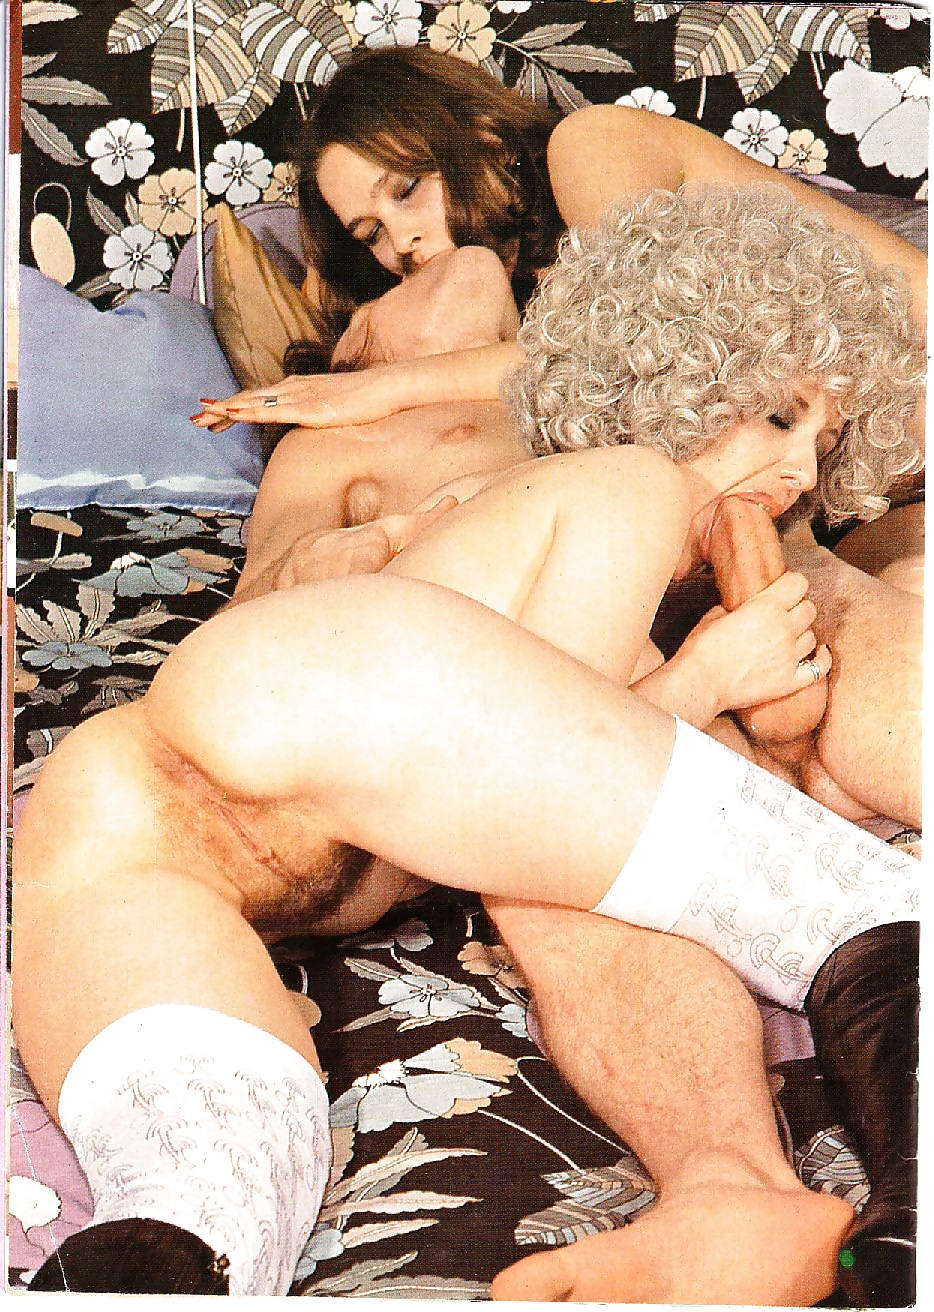 Gay vintage porn magazines richard boy